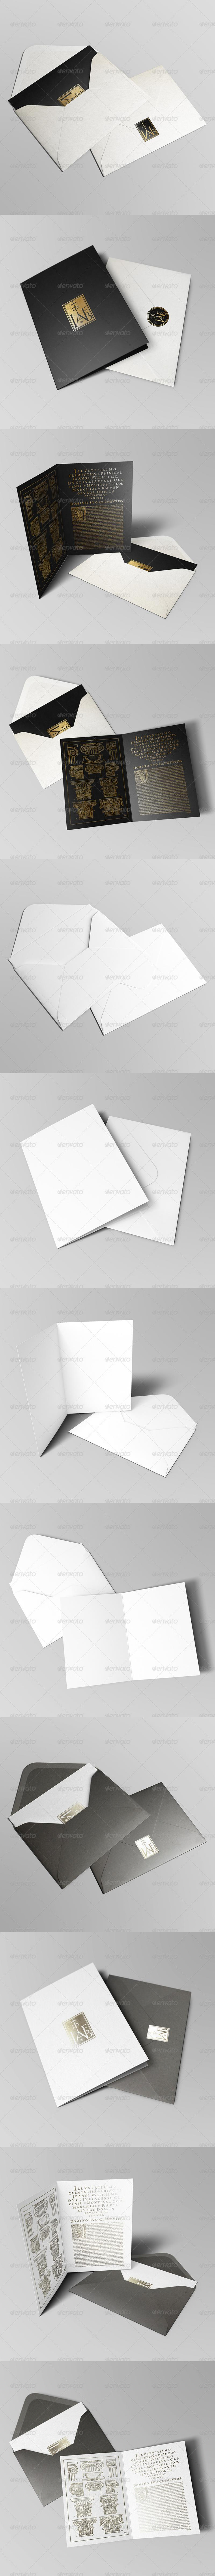 Invitation & Greeting Card Mockup Pack II